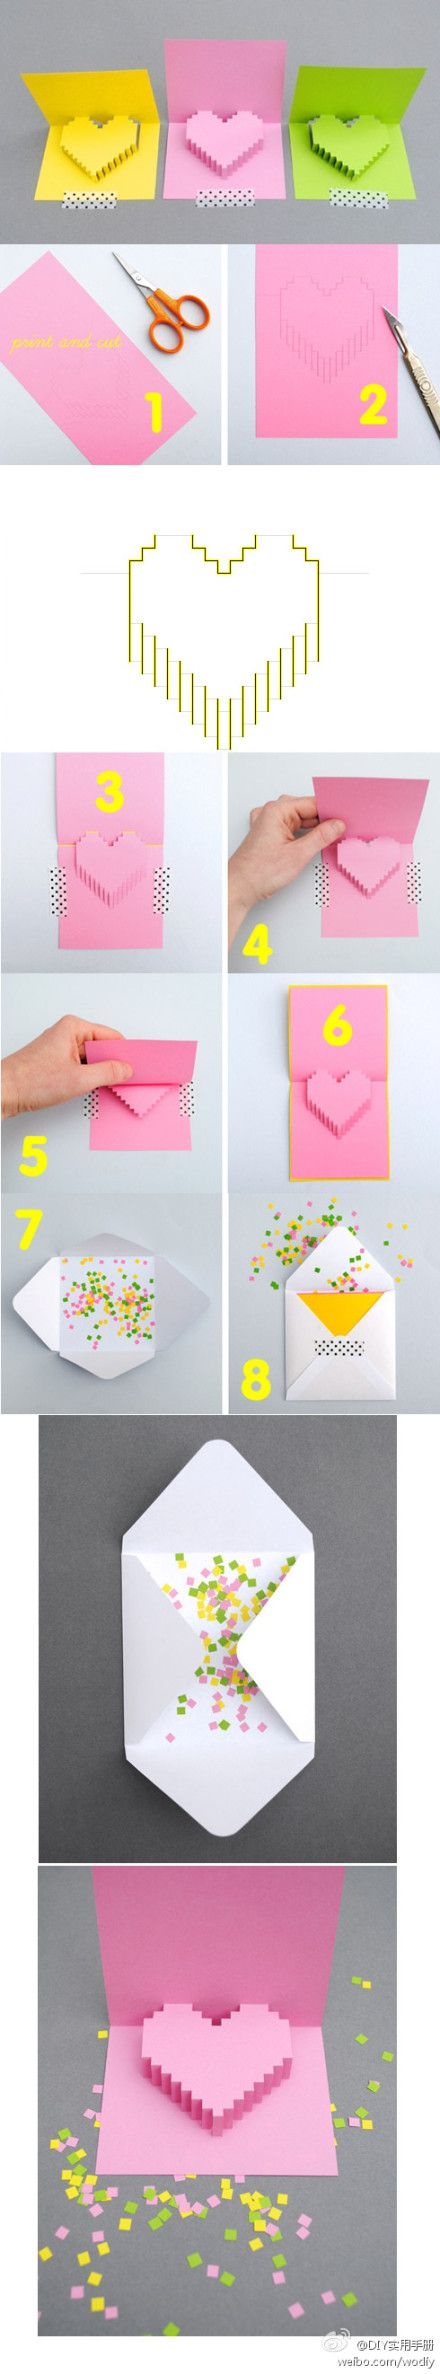 3d Hearts Paper Crafts Crafts Diy Cards